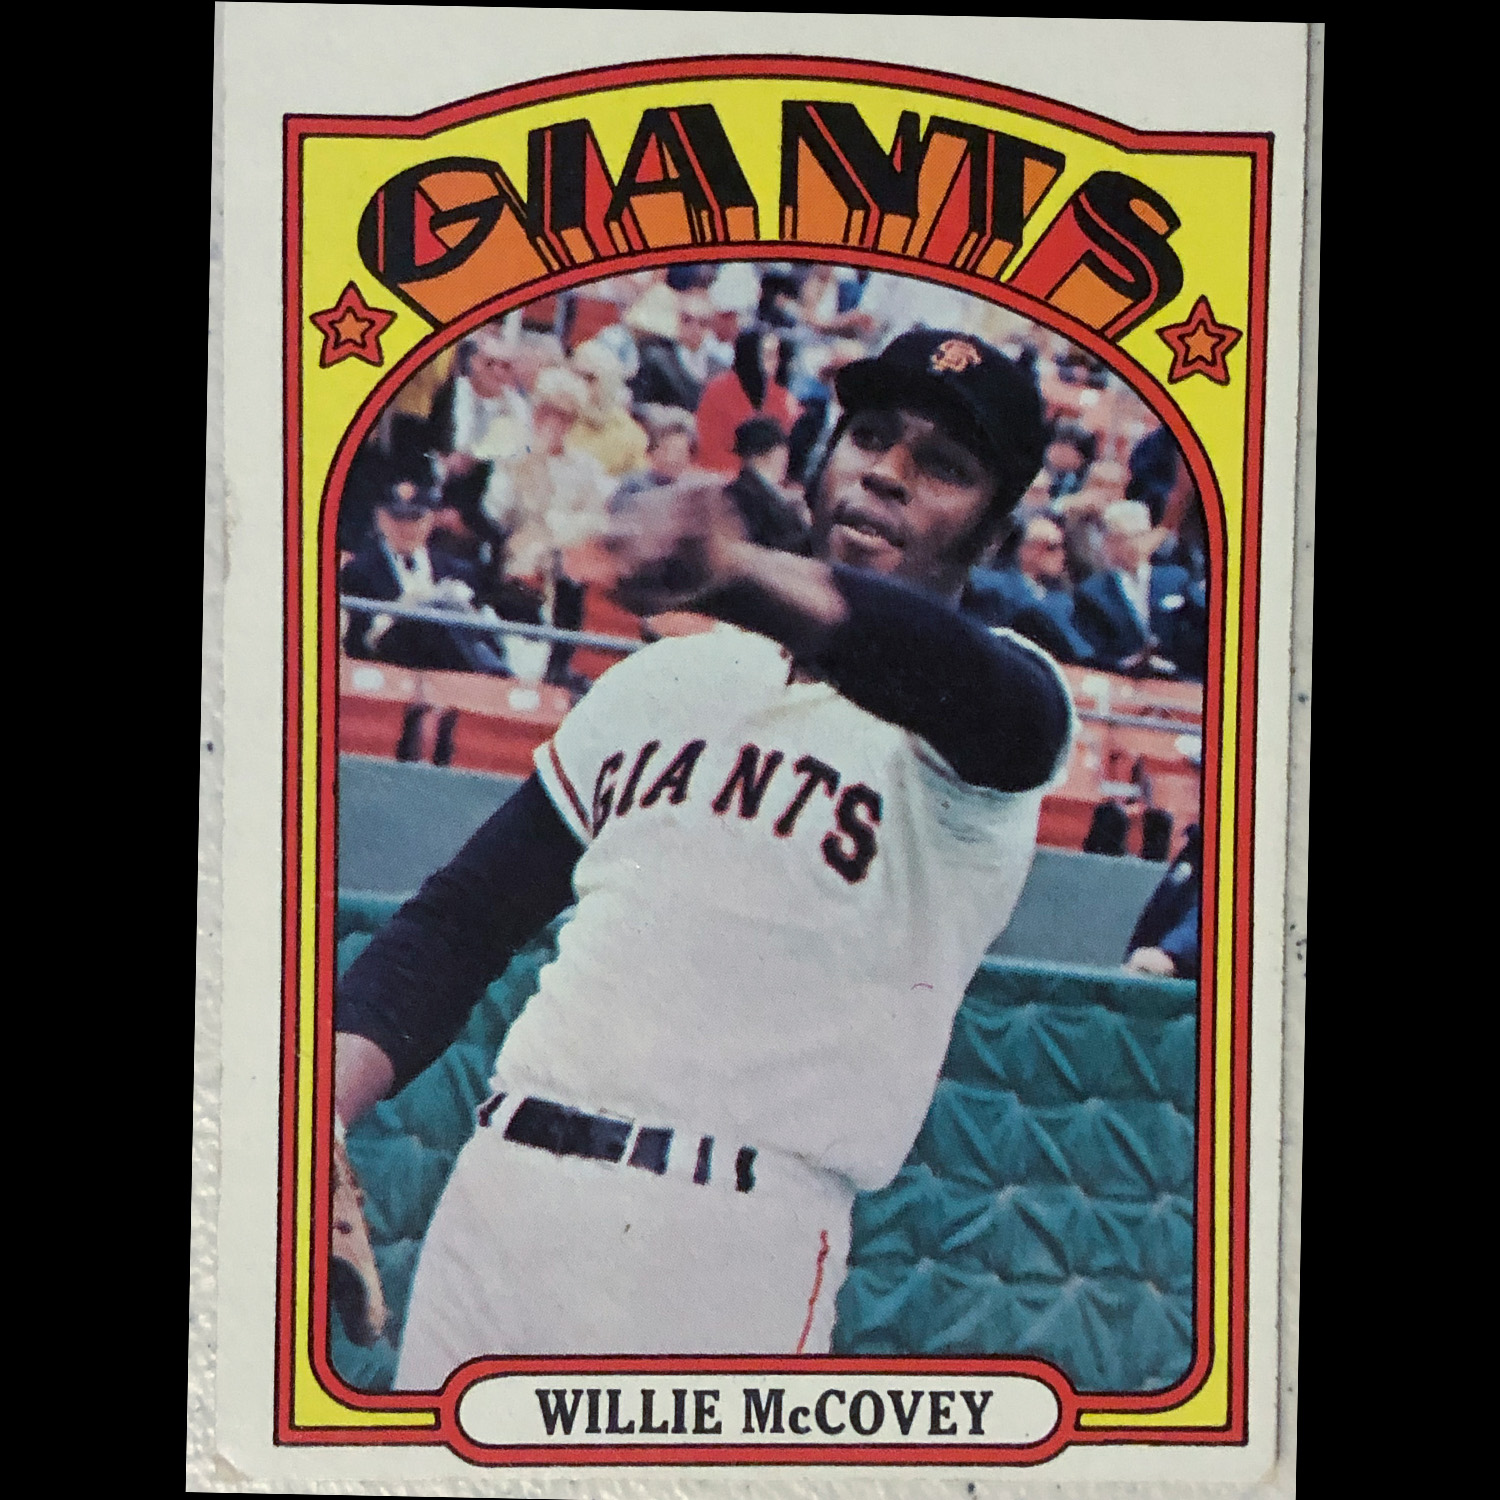 I saw Willie McCovey the last Giants game I went to in San Francisco.  Love the snapshot quality of this, slow shutter speed so his hand is blurred.  Just such a departure from the images on cards today.  This was kind of an action card but then he is just warming up.